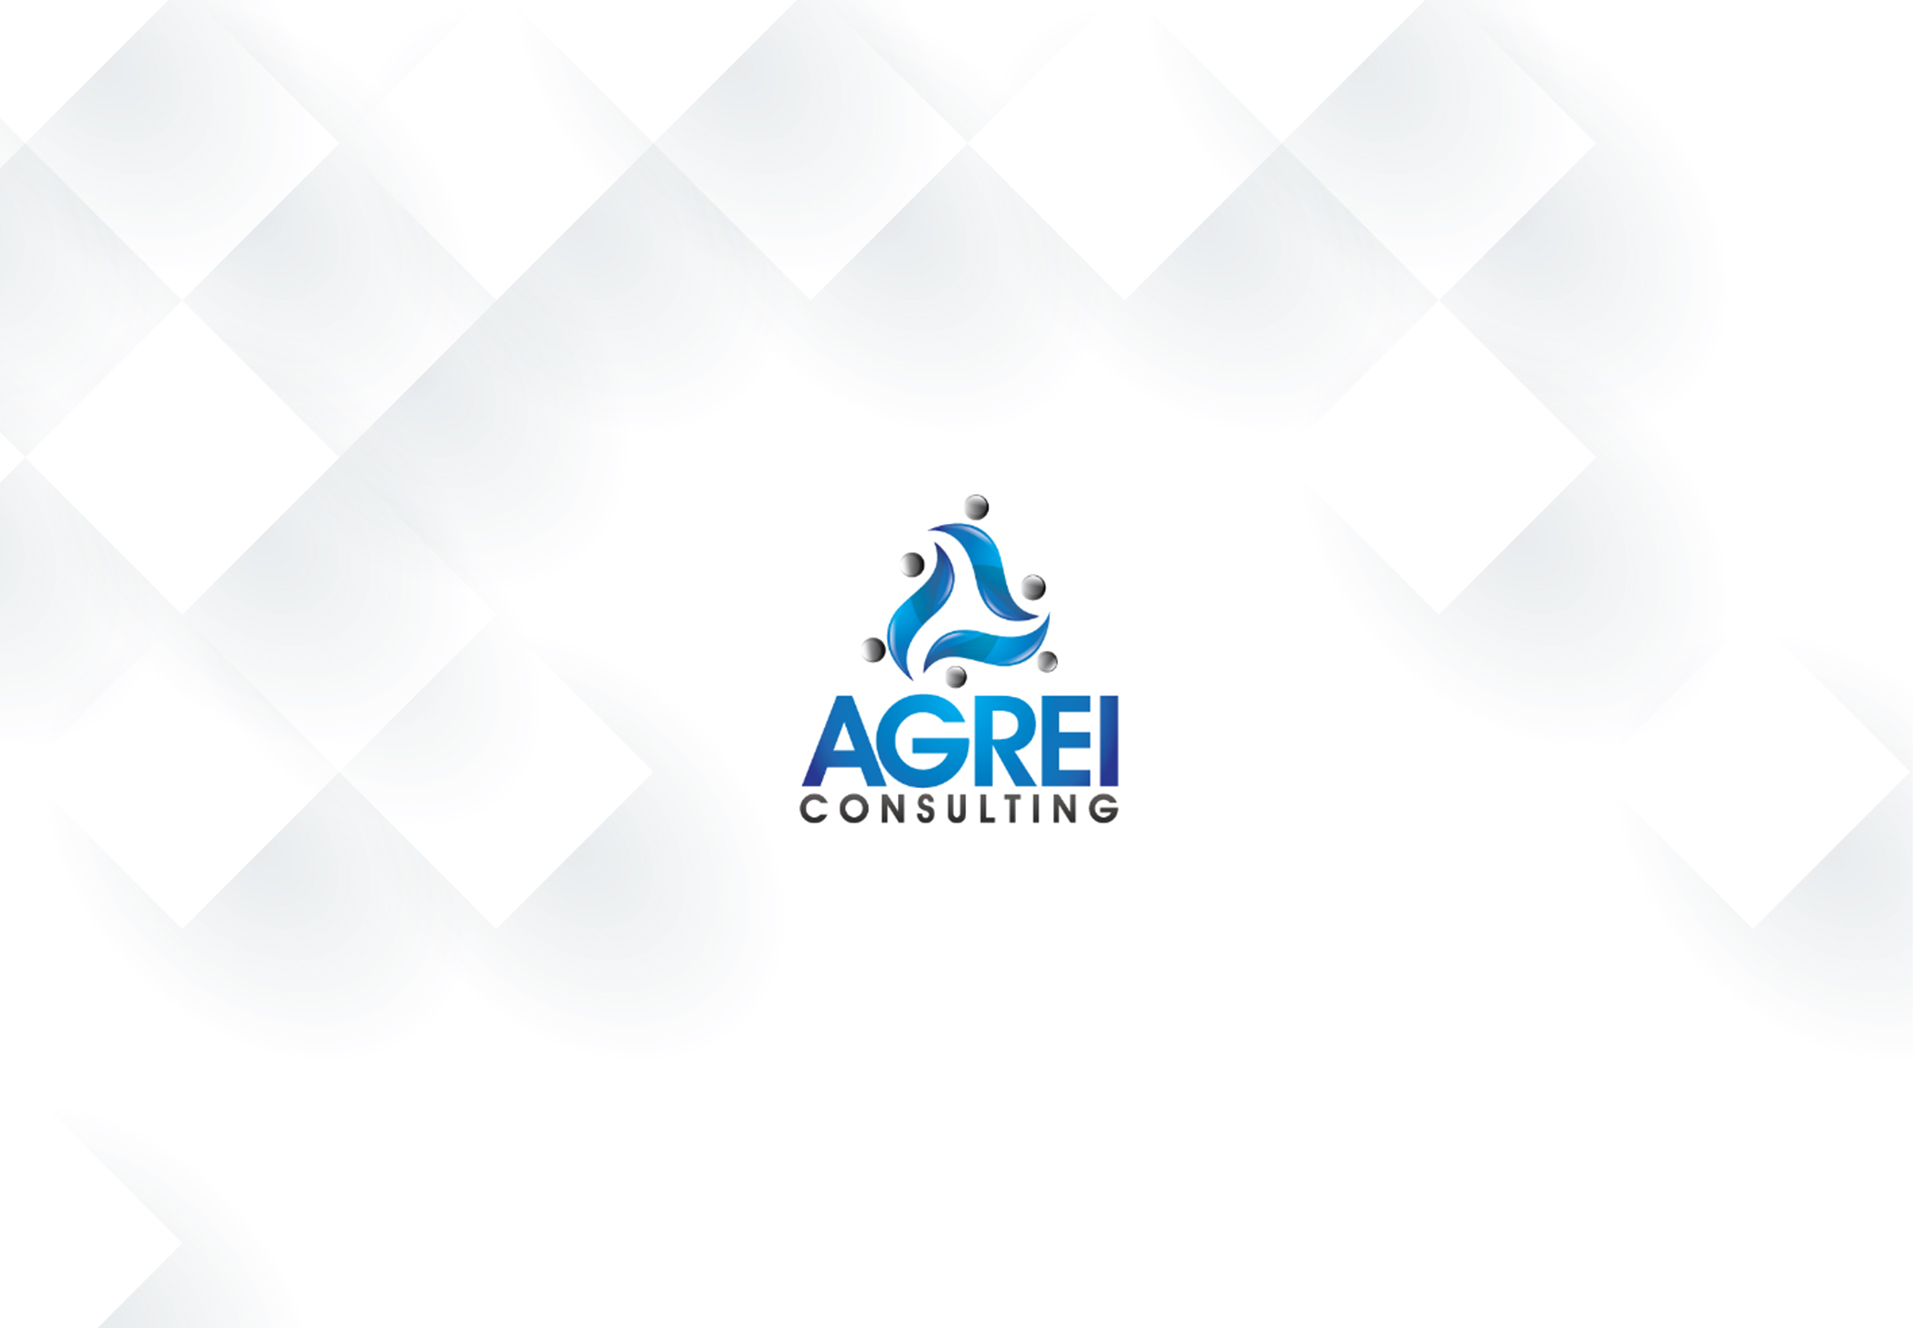 Agrei Consulting migrates 30K+ users to Office 365 from Google Apps